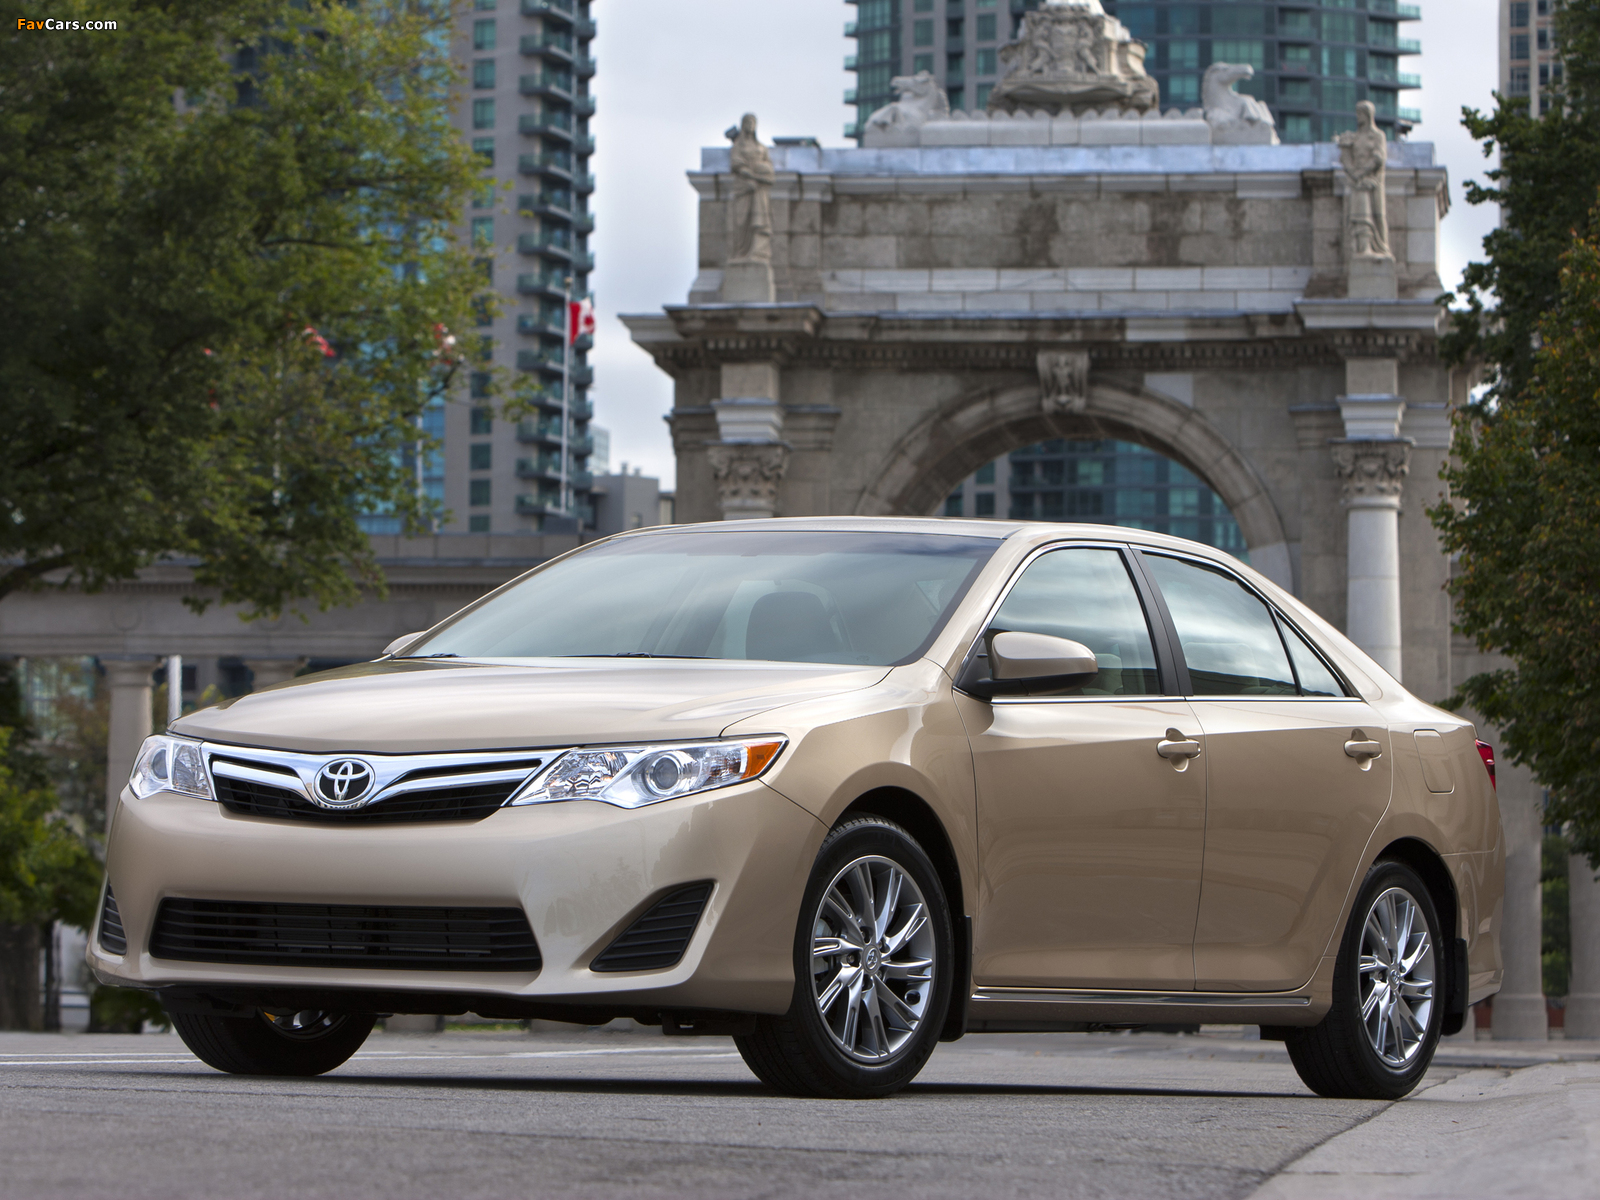 Toyota Camry LE 2011 wallpapers (1600 x 1200)